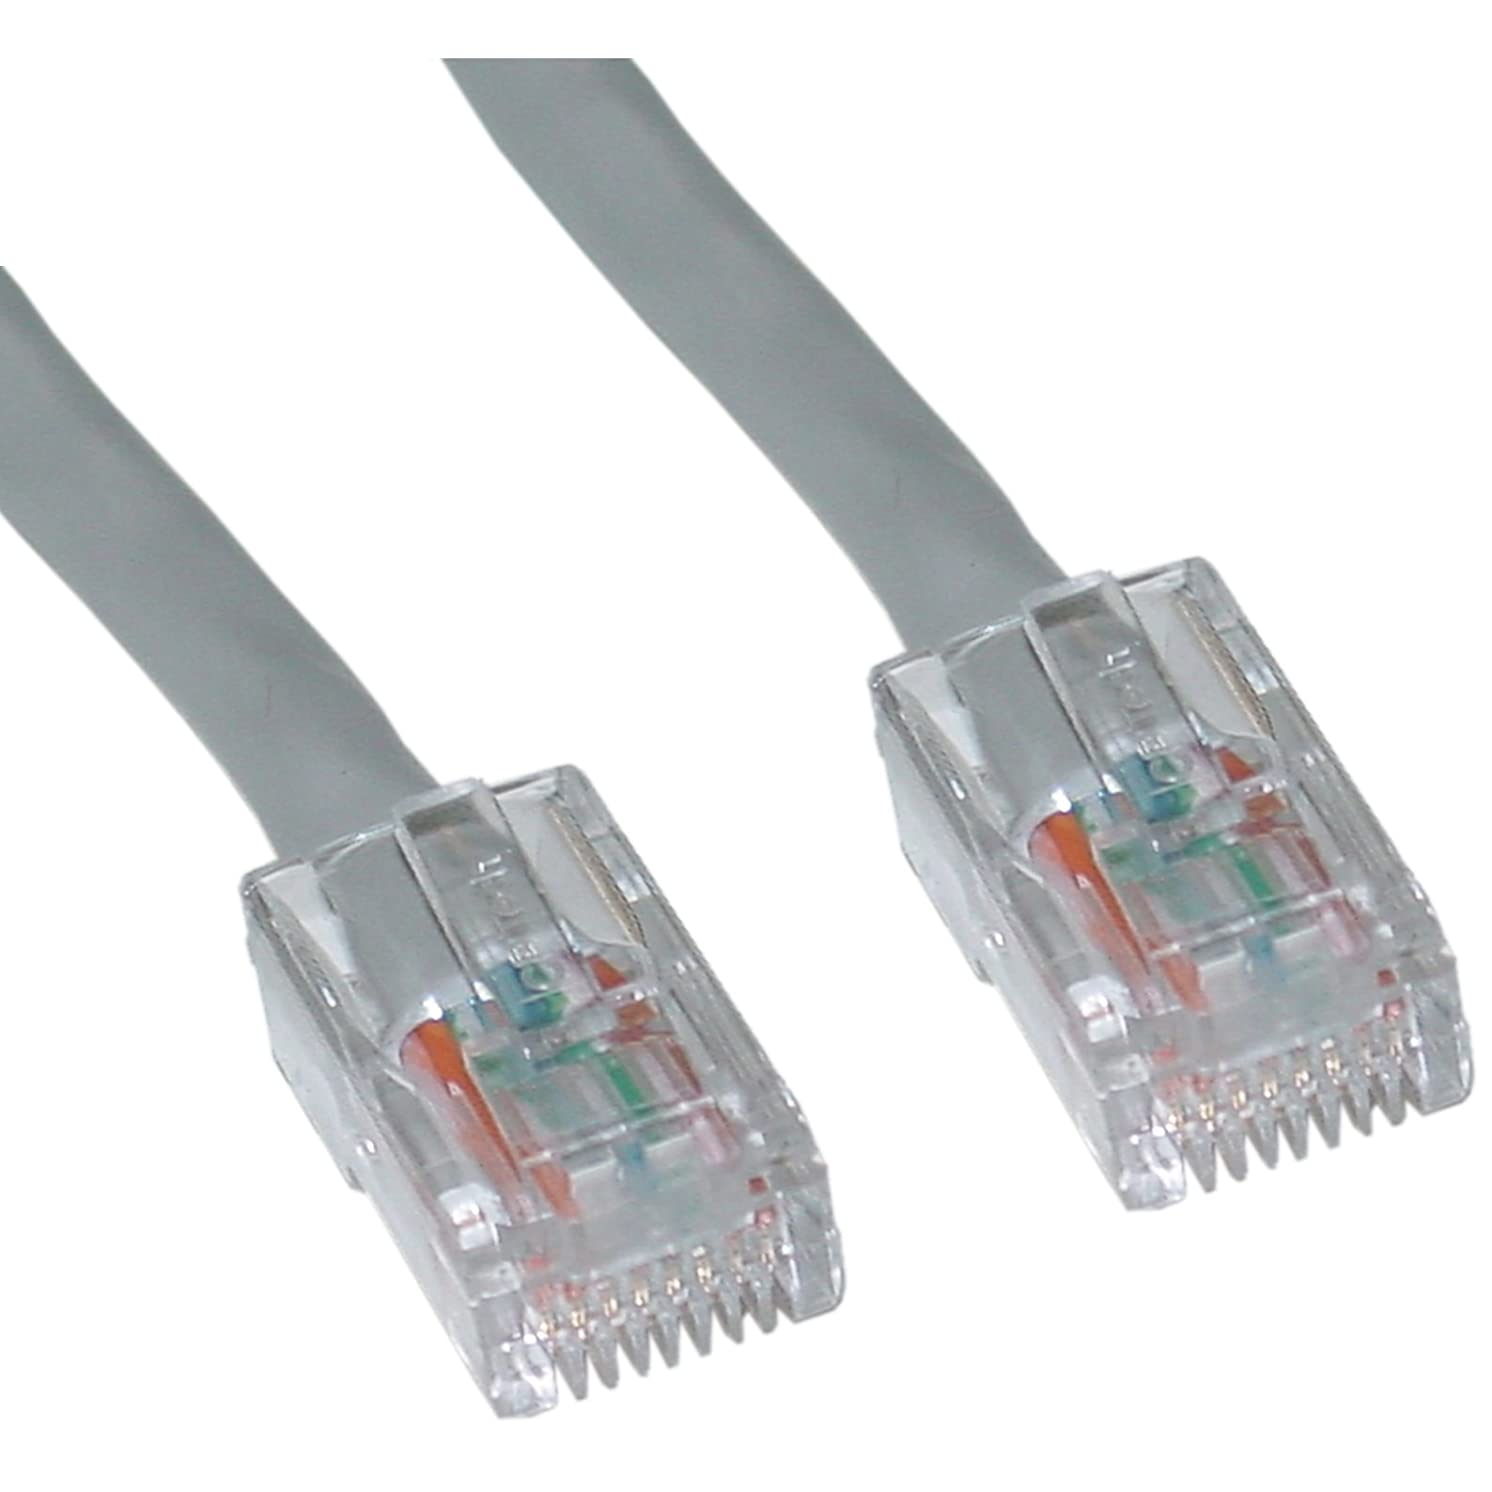 Offex Cat6 Ethernet Patch Cable, Bootless, 2-Foot, Gray (OF-10X8-12102)